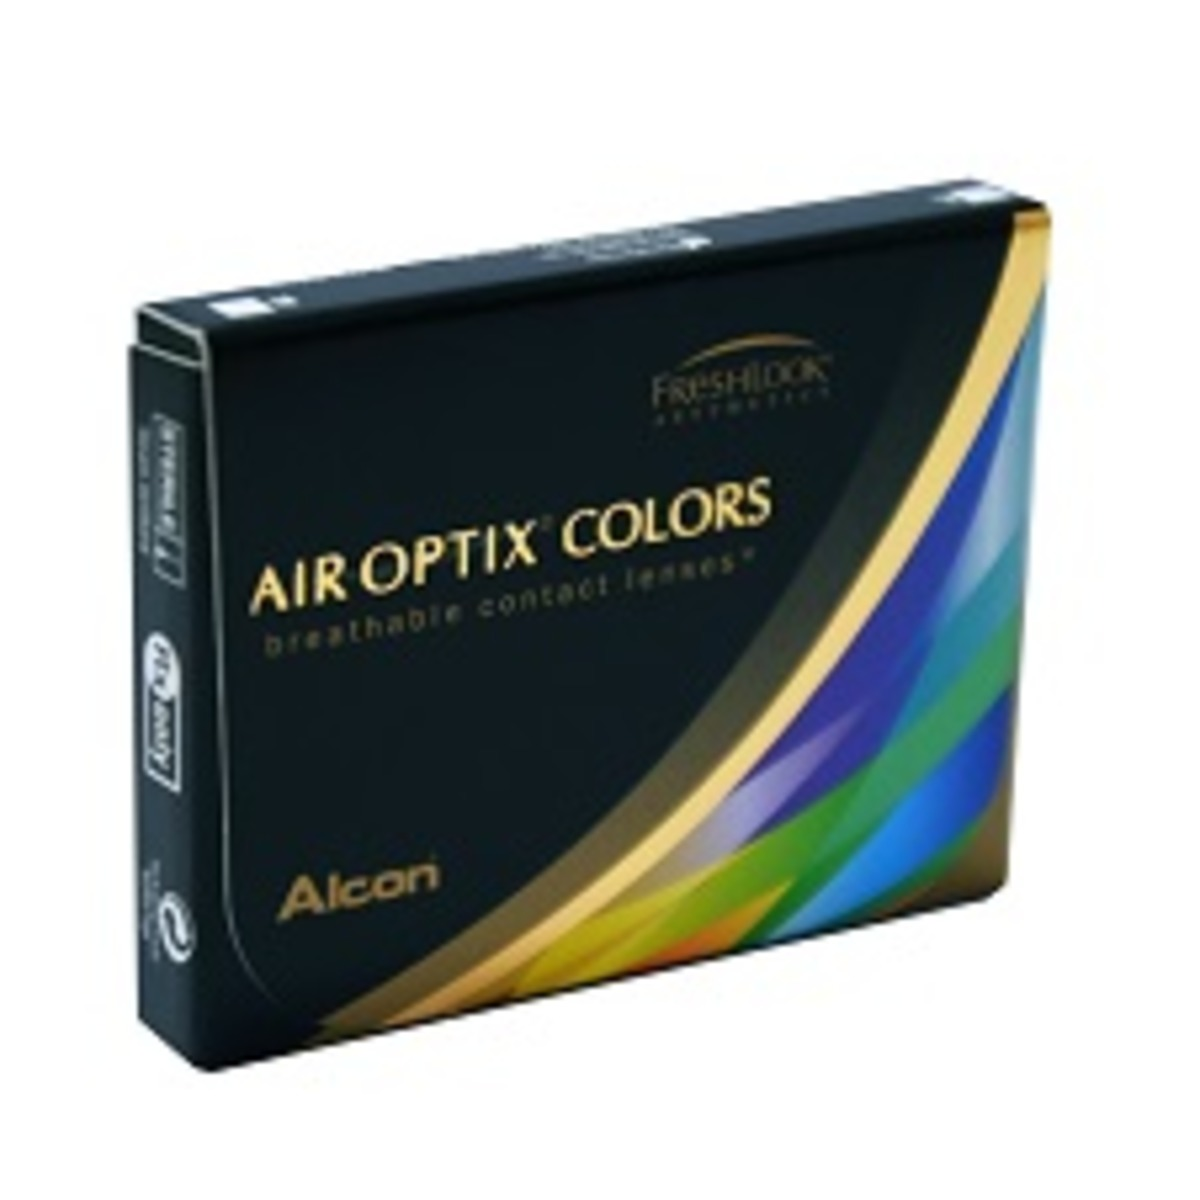 Air Optix Colors Ambre (Honey)